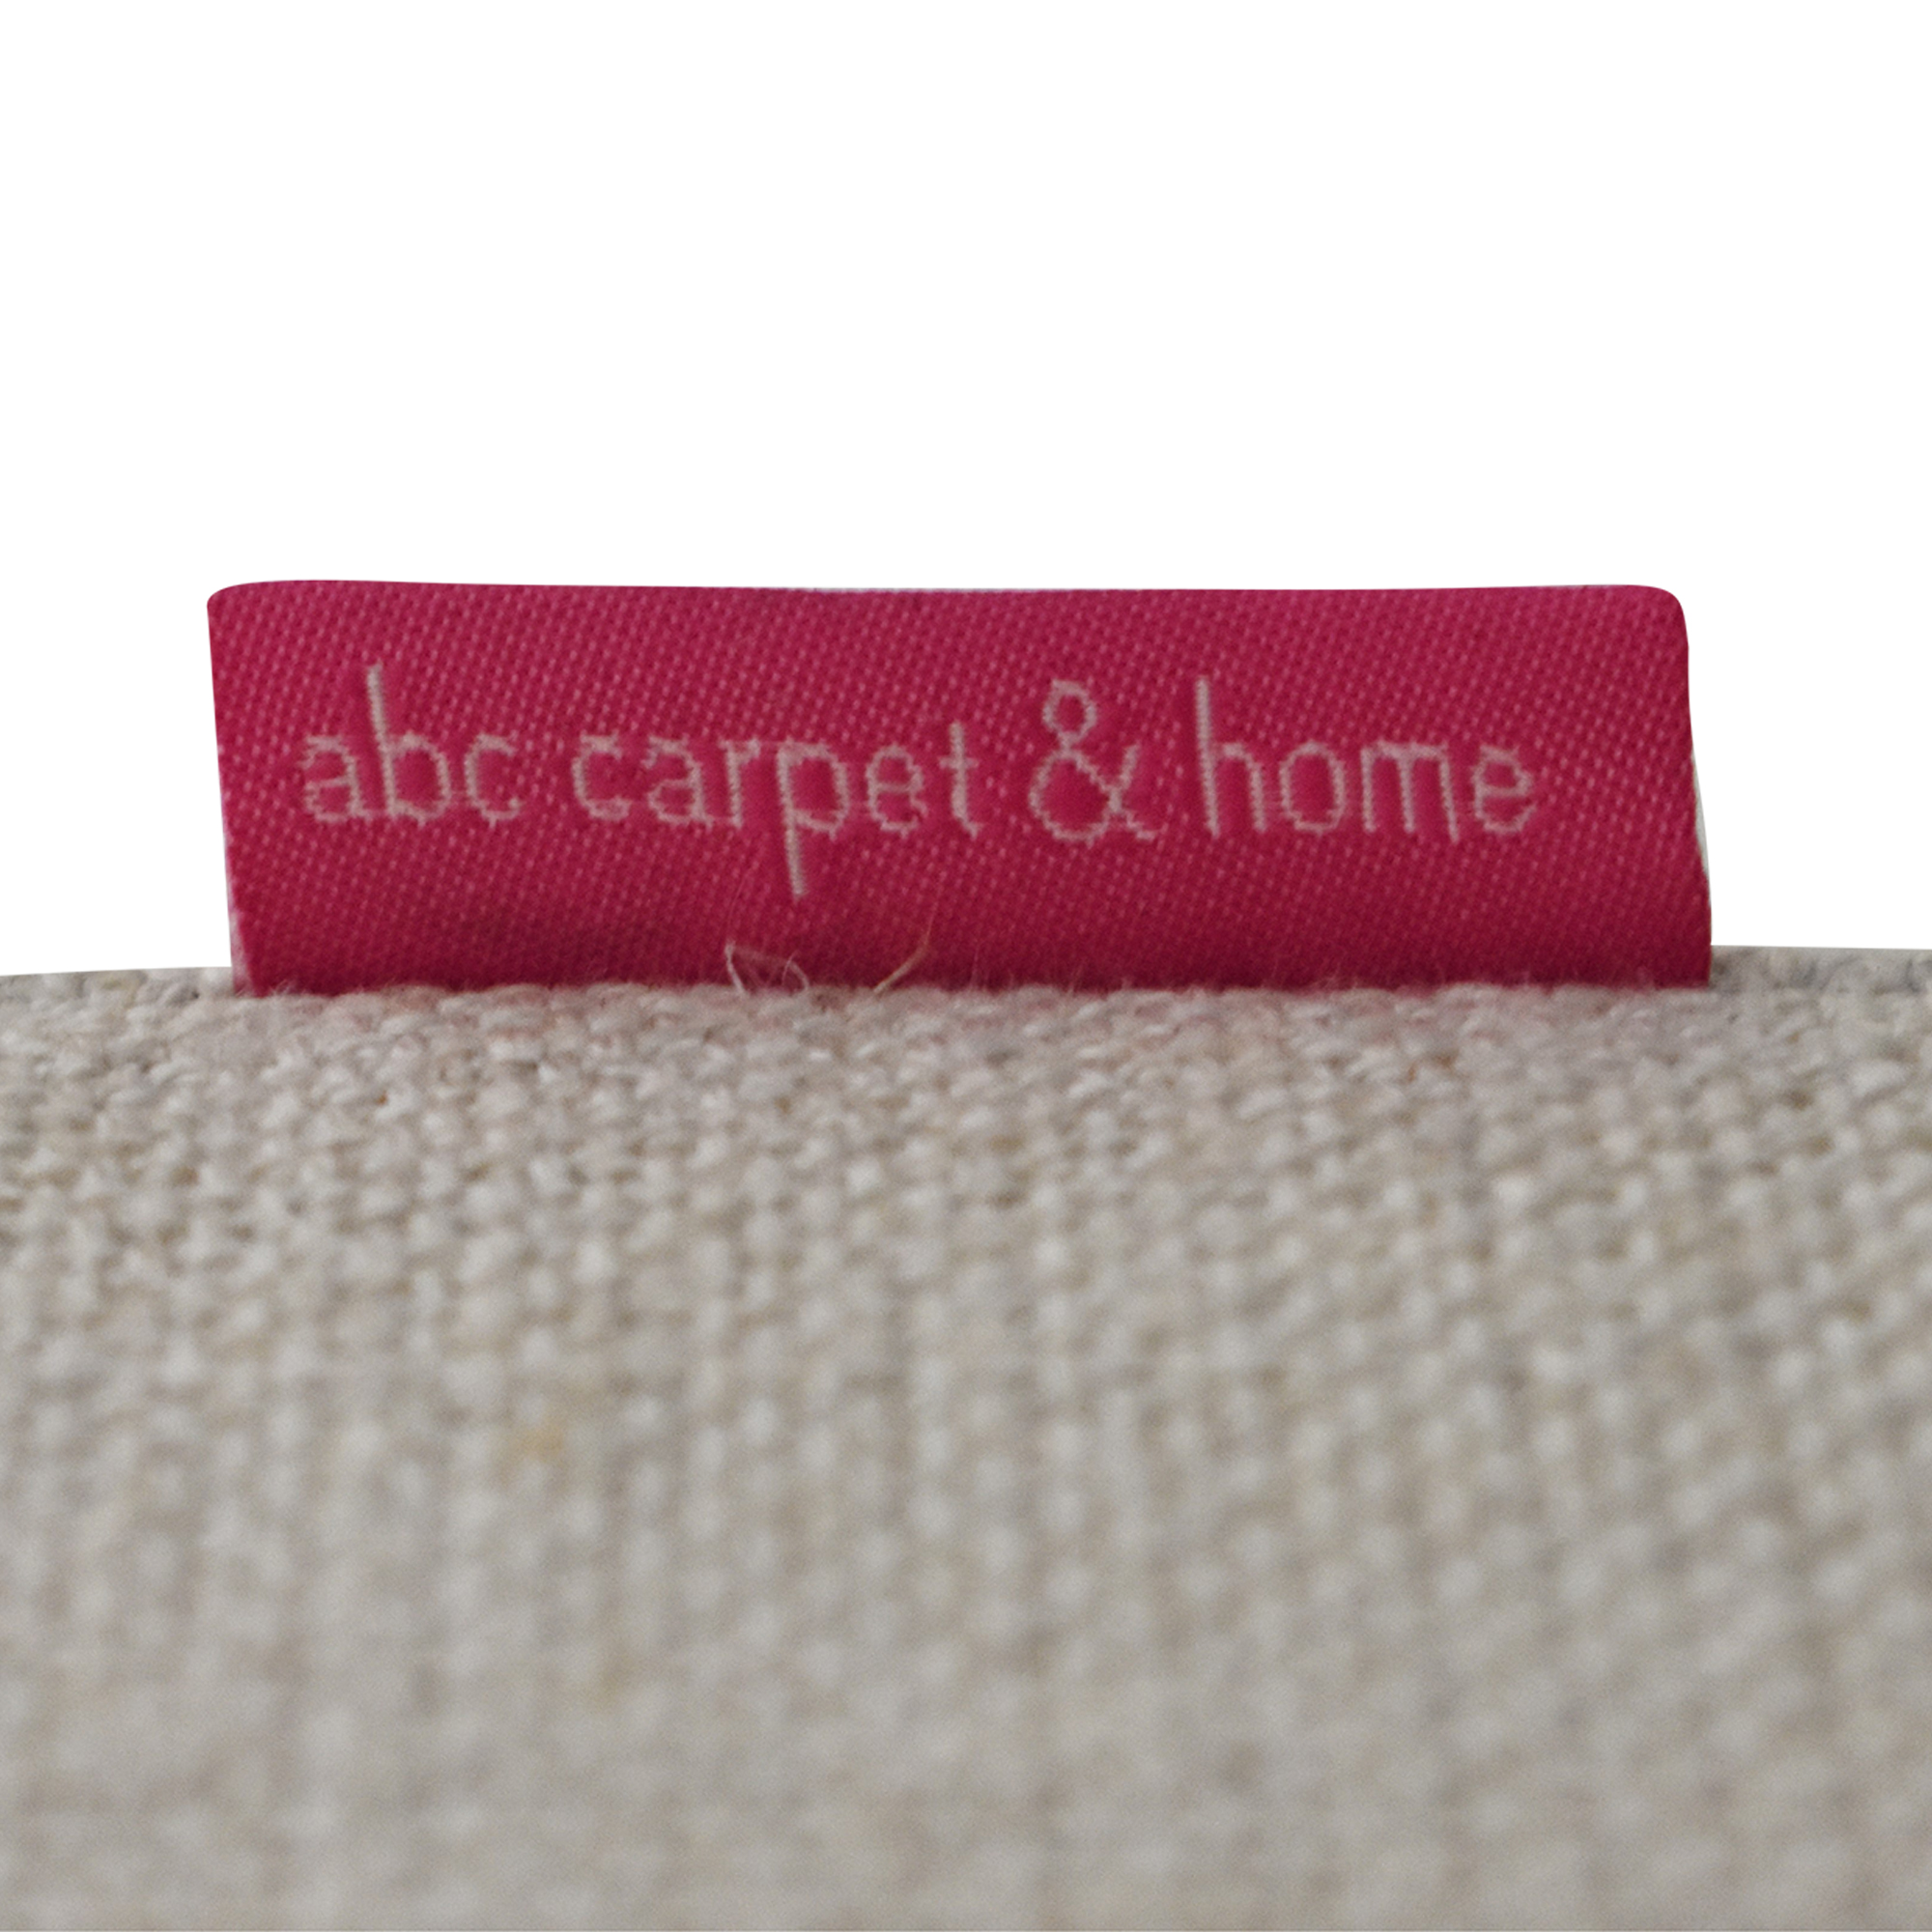 ABC Carpet & Home ABC Carpet & Home Crashpad Convertible Sleeper Lounger coupon